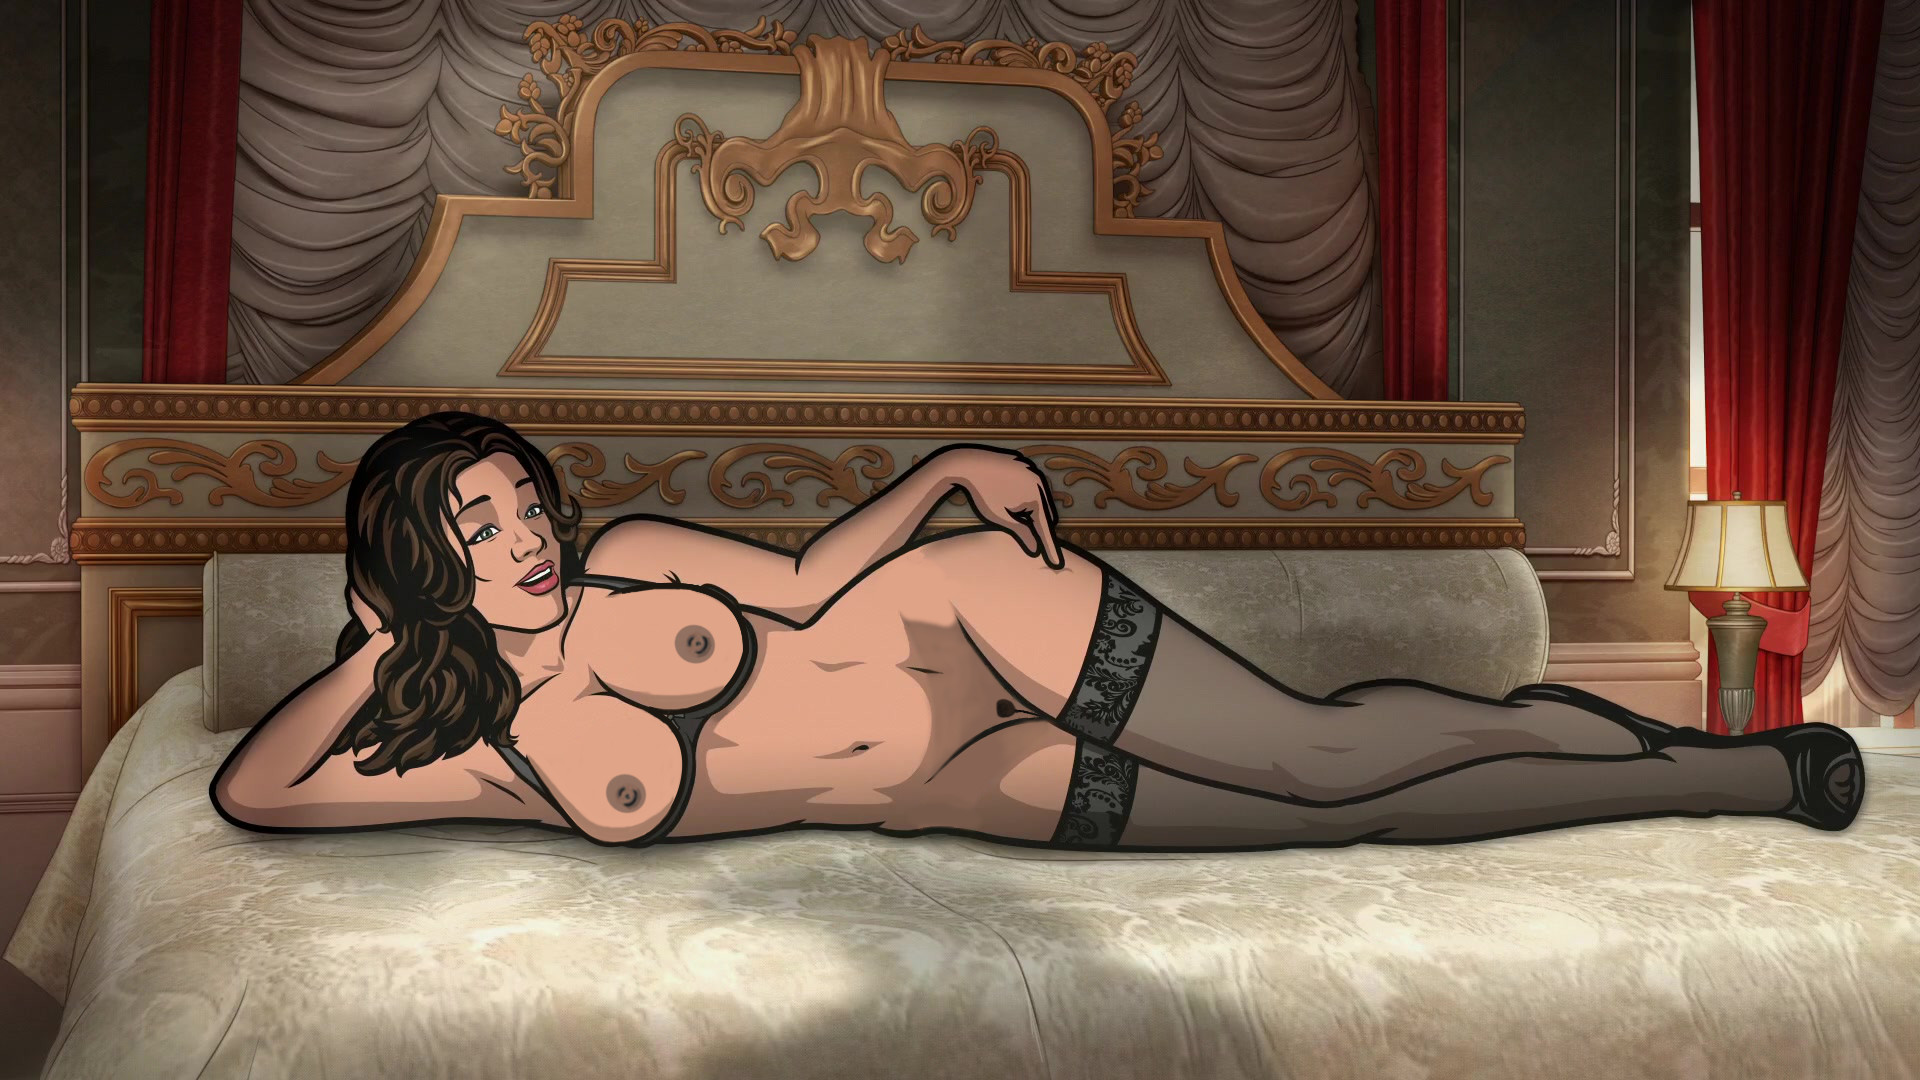 Archer tv nude sexy images